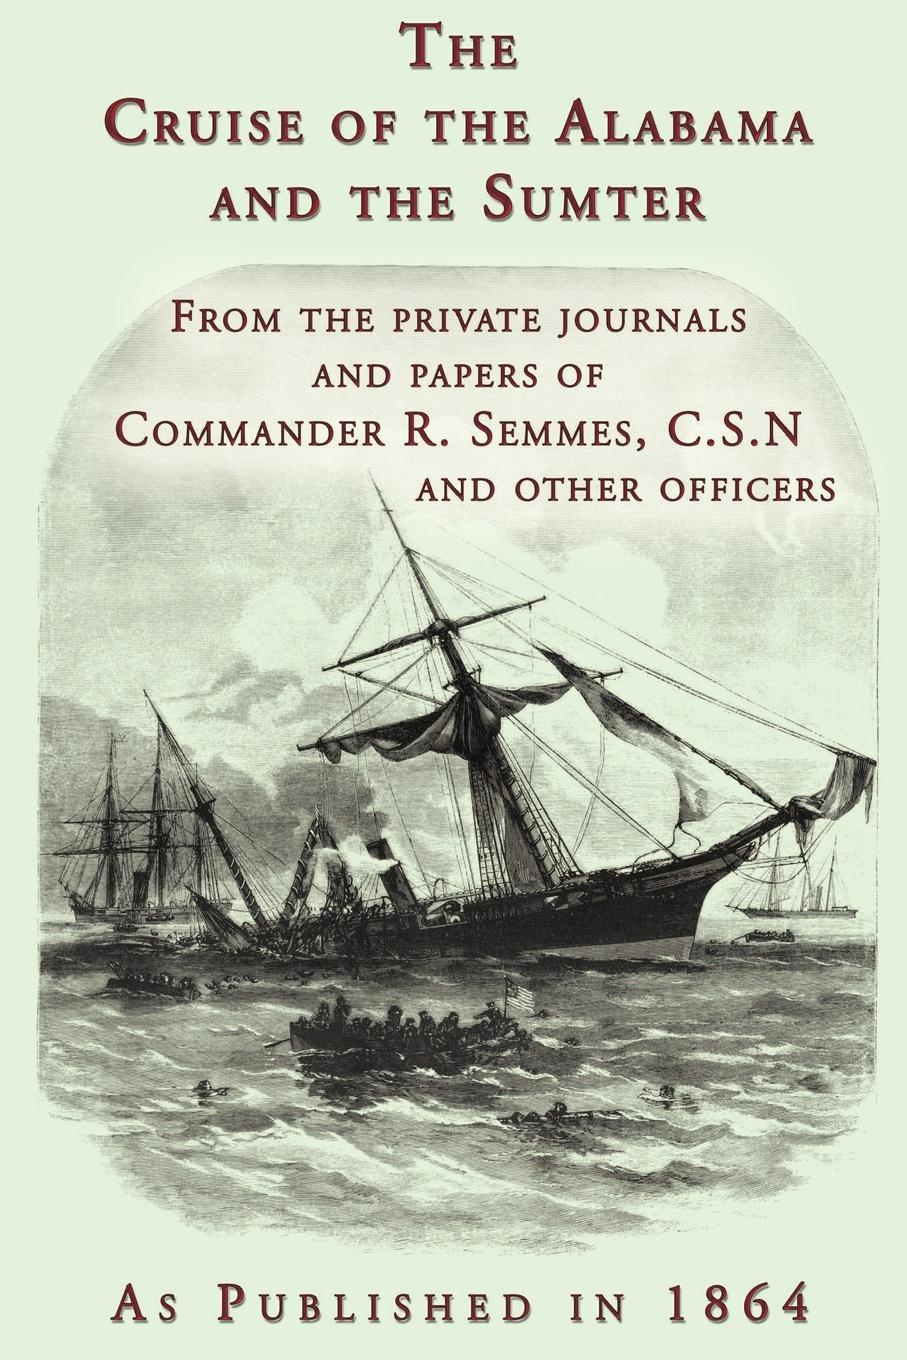 R. Semmes, Raphael Semmes The Cruise of the Alabama and the Sumter. From the Private Journals and Papers of Commander R. Semmes, C.S.N. and Other Officers jorge cruise 8 minutes in the morning r